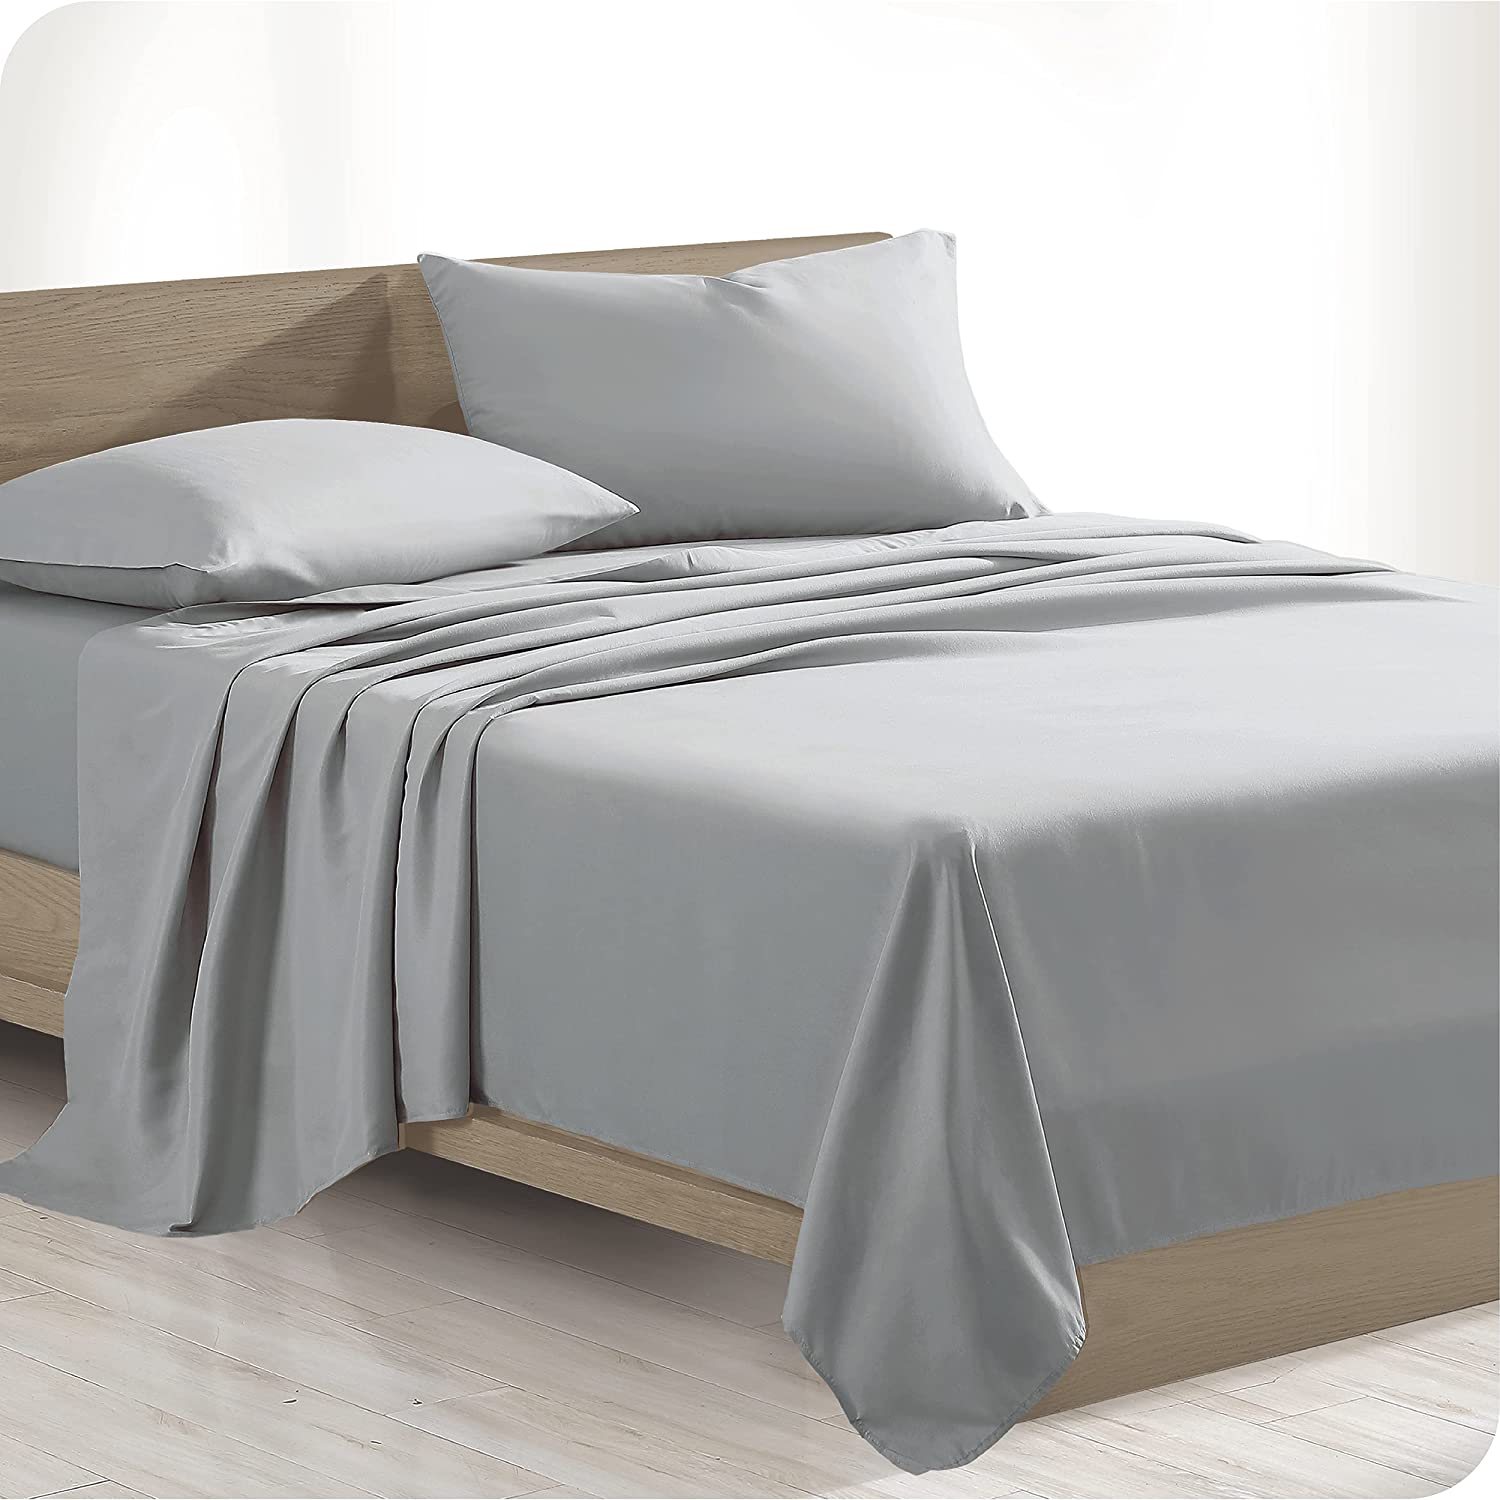 Bare Home 100% Organic Cotton Twin Sheet Set - Crisp Percale Weave - Lightweight & Breathable - Bedding Sheets & Pillowcases (Twin, Light Grey)